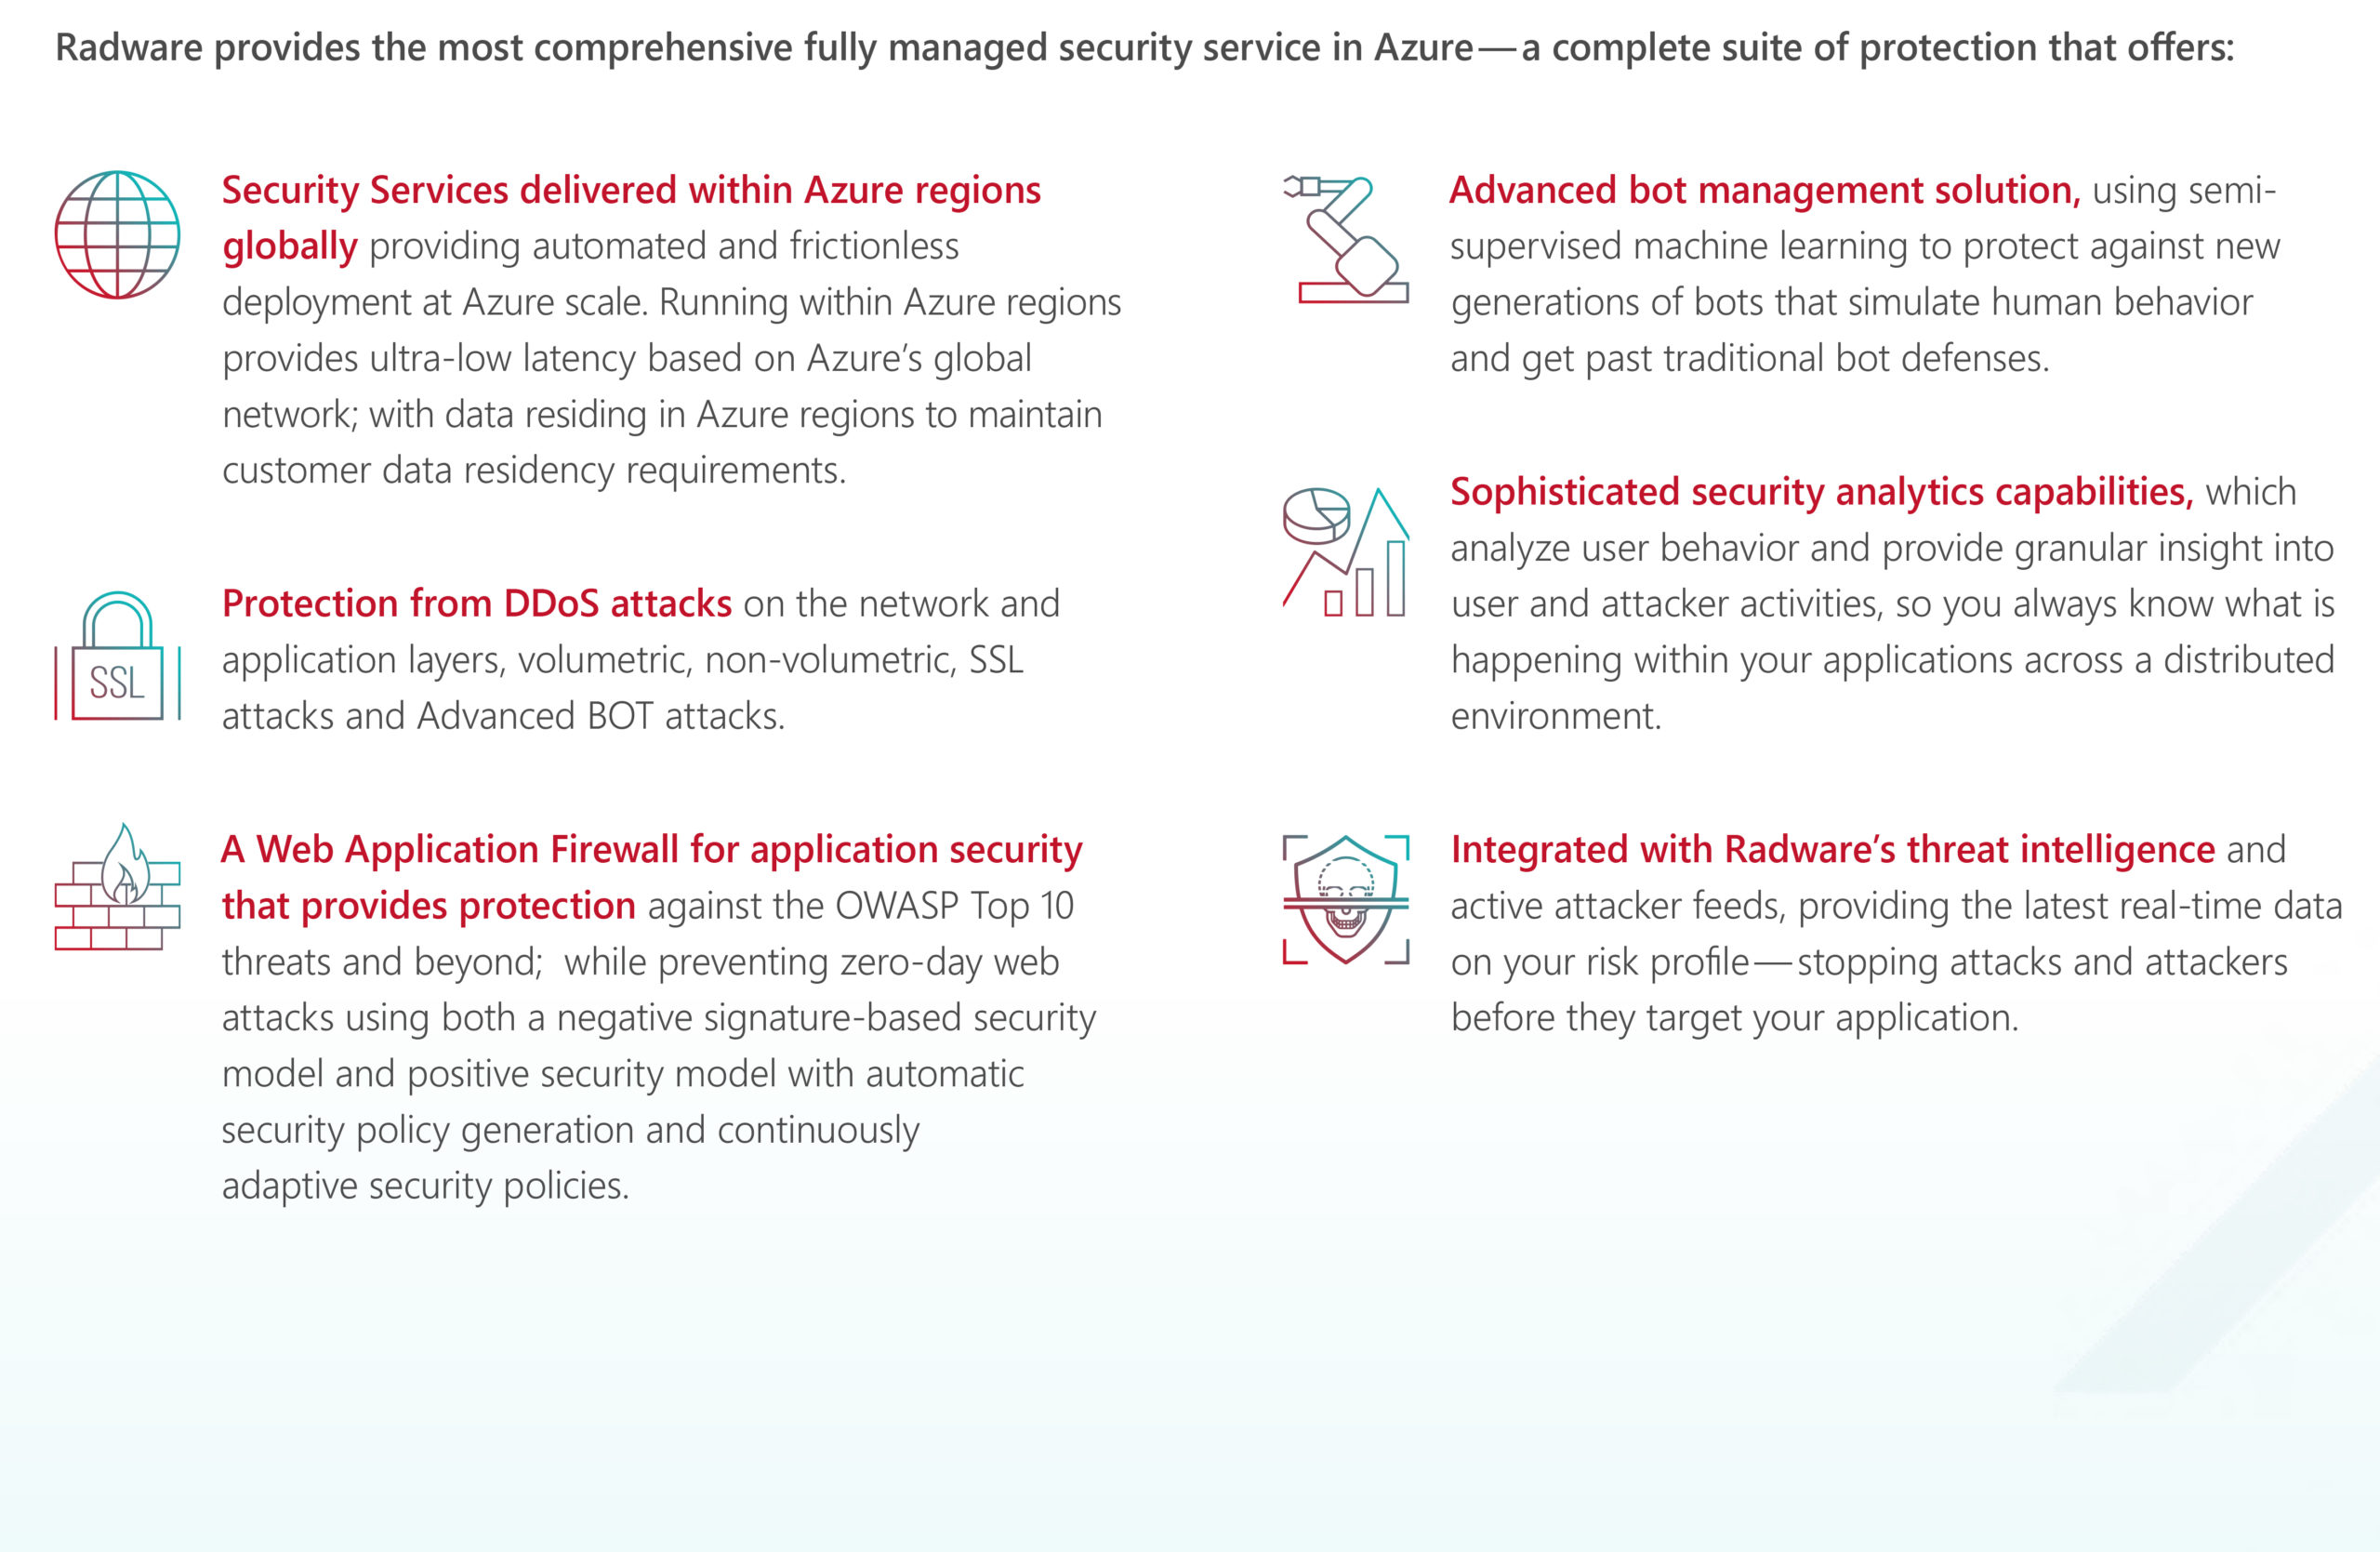 Six steps on how to neutralize the application threat